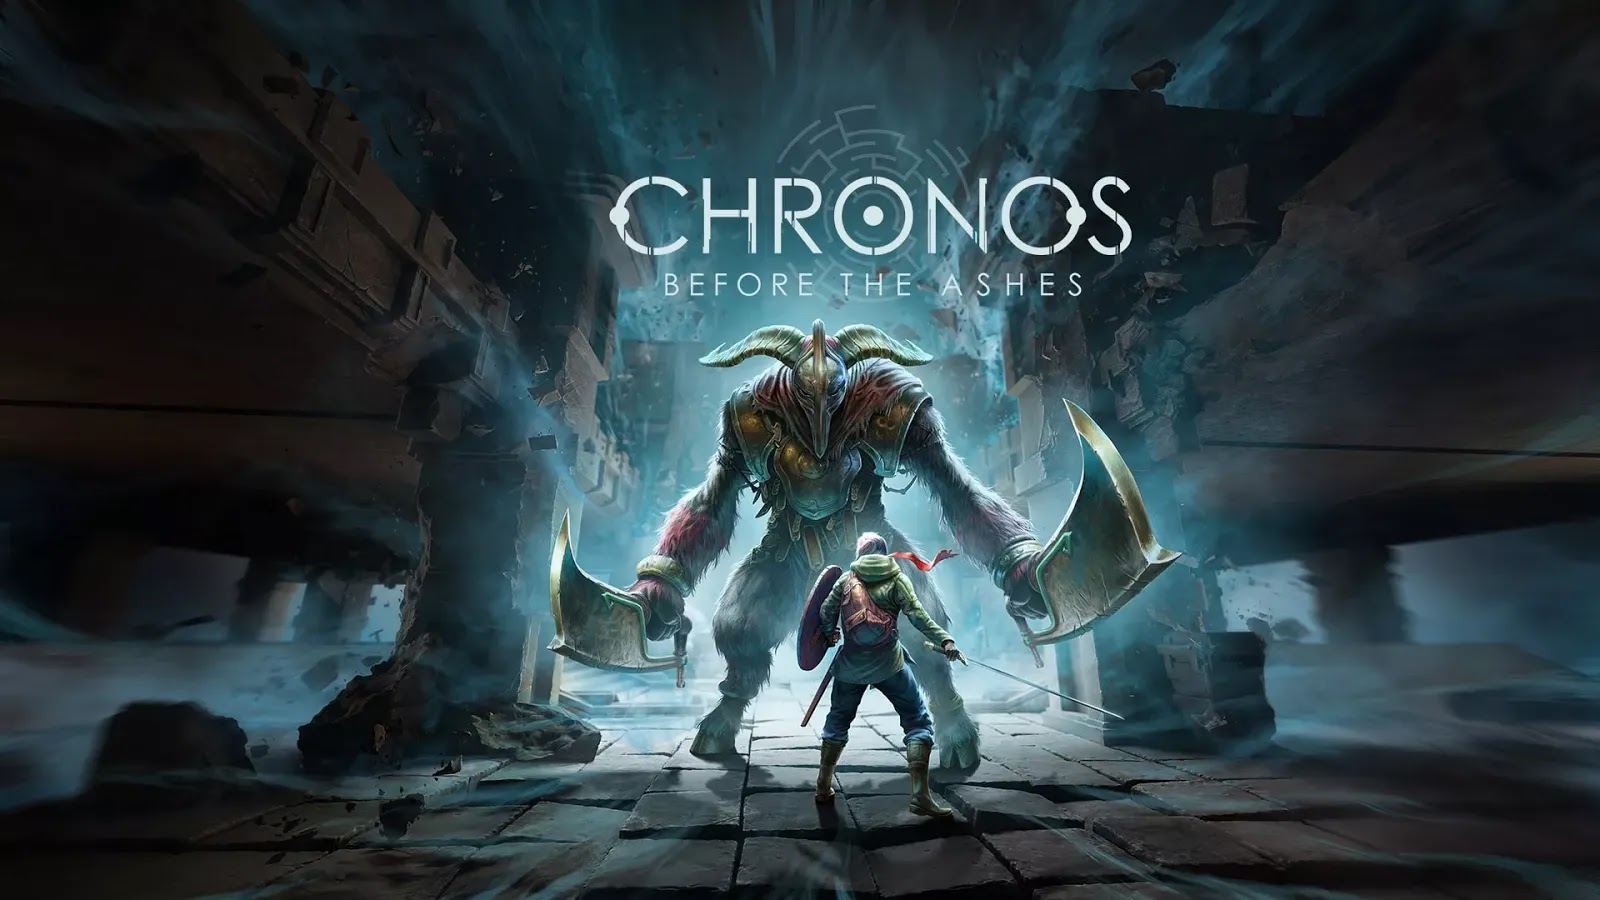 All you need to know about Chronos: Before the Ashes